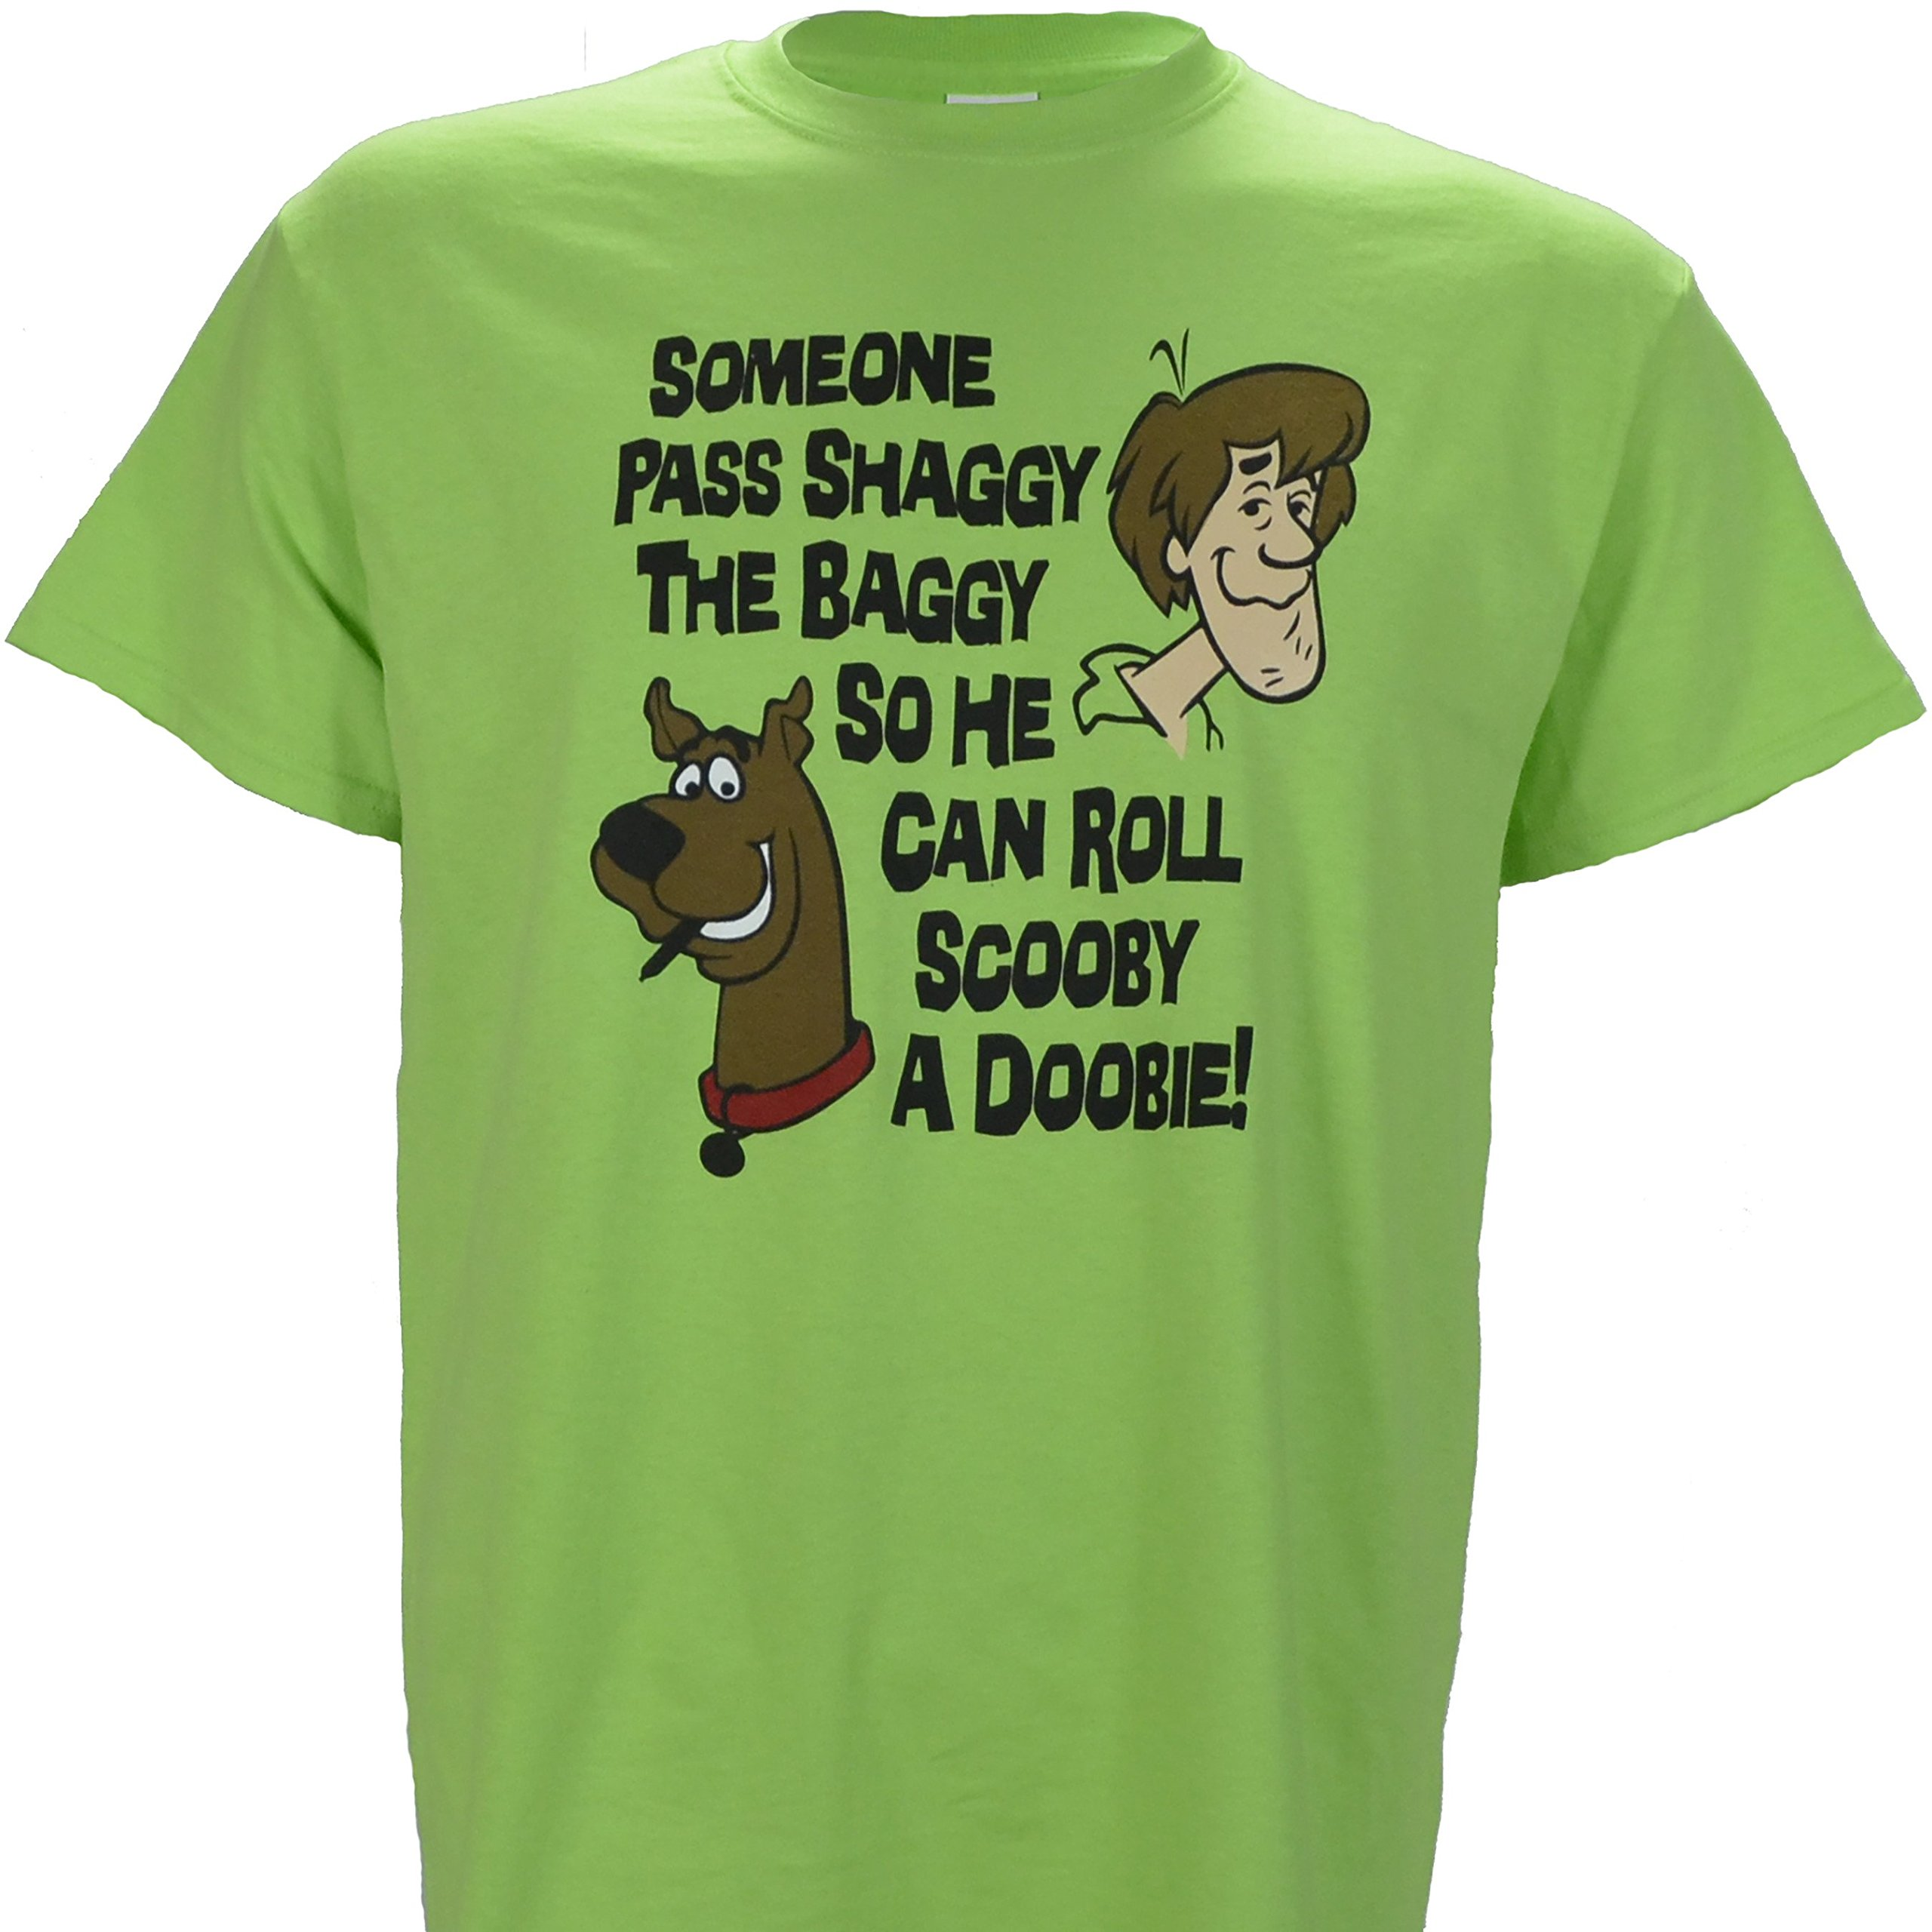 Someone Pass Shaggy The Baggy so He Can Roll Scooby a Doobie on Green Shirt